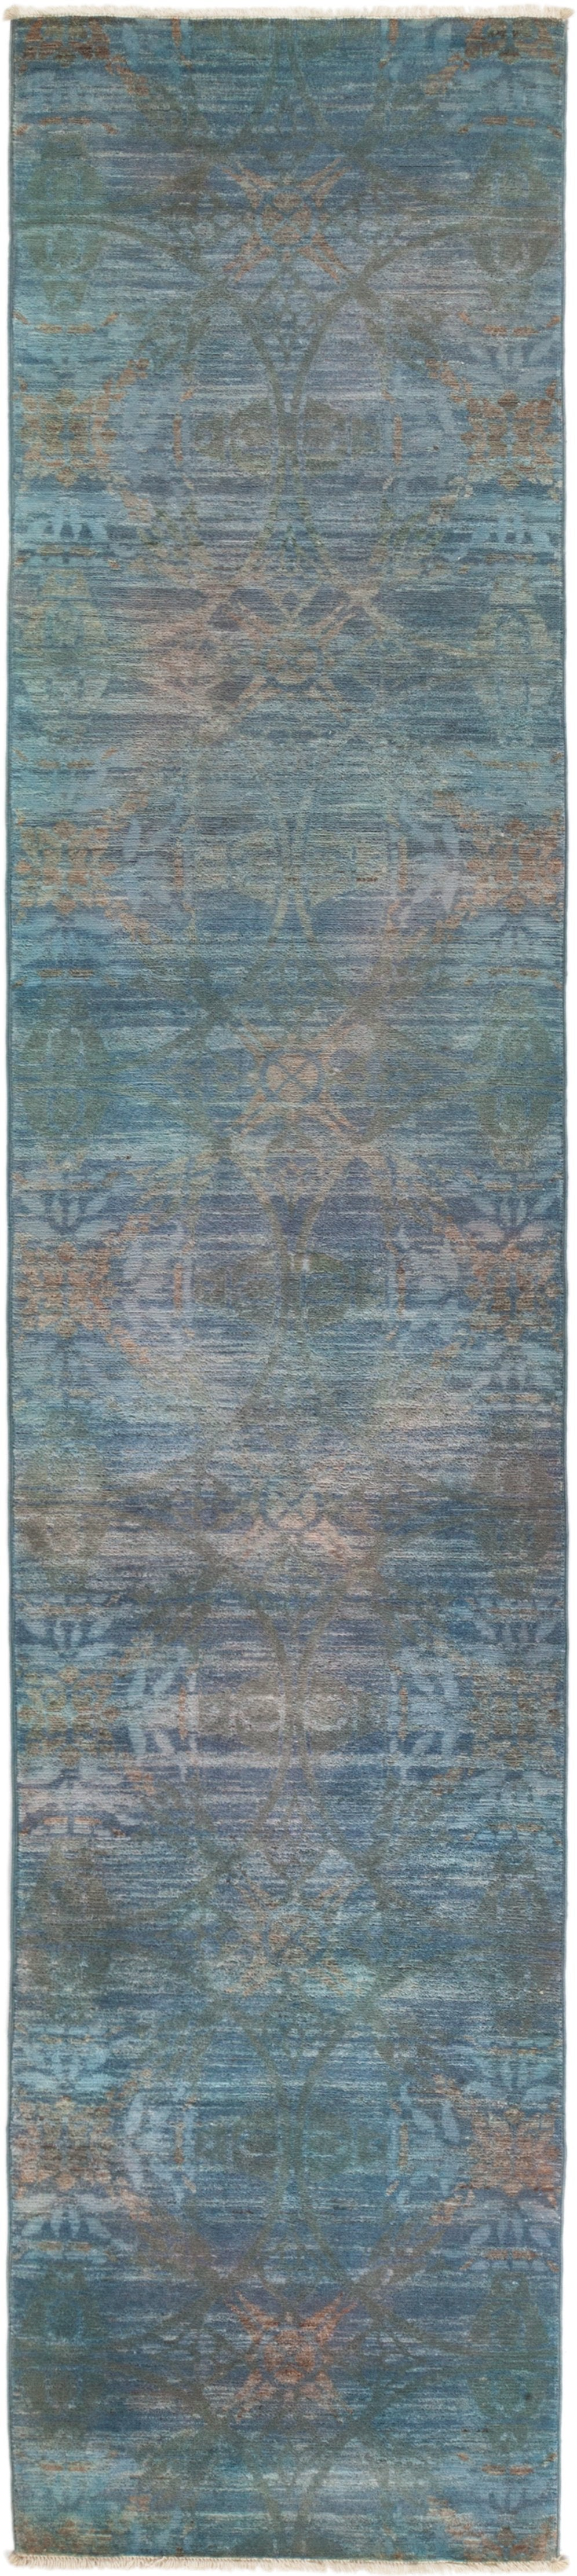 "Vibrance, Blue Wool Runner Rug - 2' 7"" x 11' 10"""